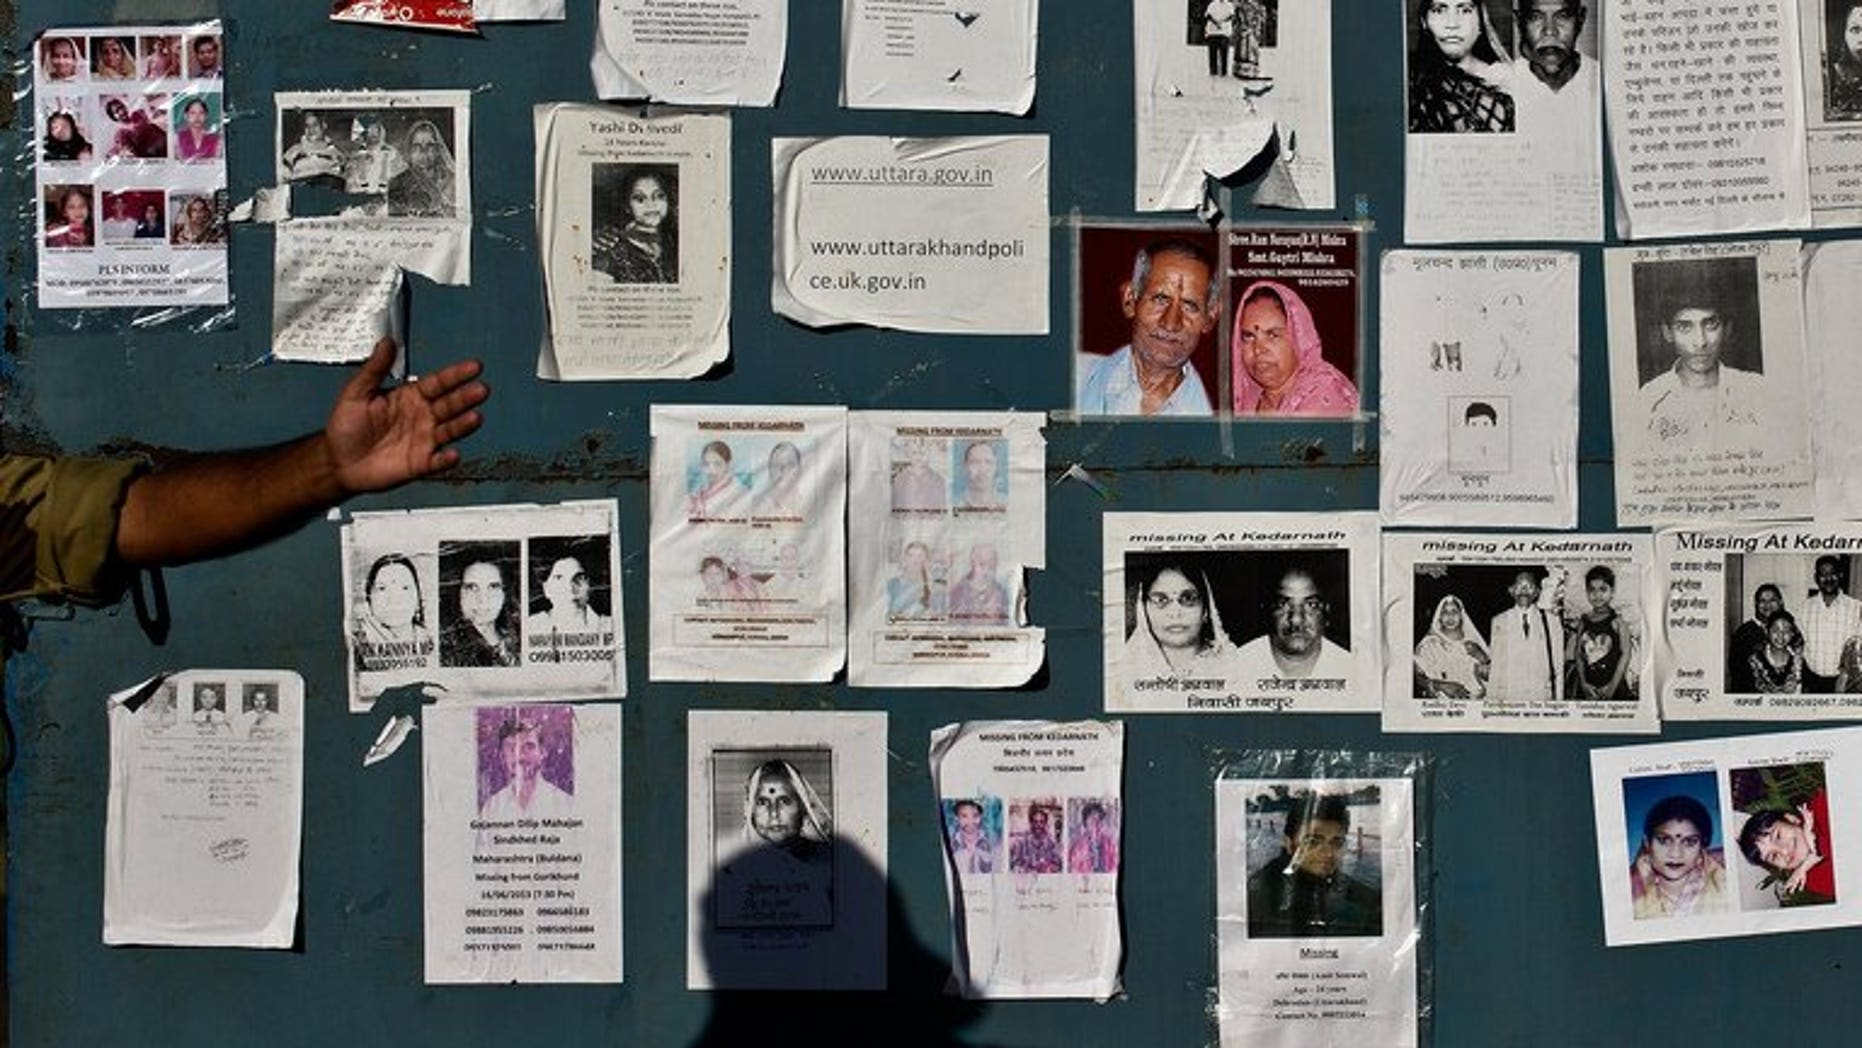 Portraits of people missing after devastating floods hit the northern state of Uttarakhand are pasted on the gates of the Jolly Grant Airport in Dehradun, on June 26, 2013. Almost 6,000 people listed as missing after flash floods struck northern India last month are now presumed dead, officials said.